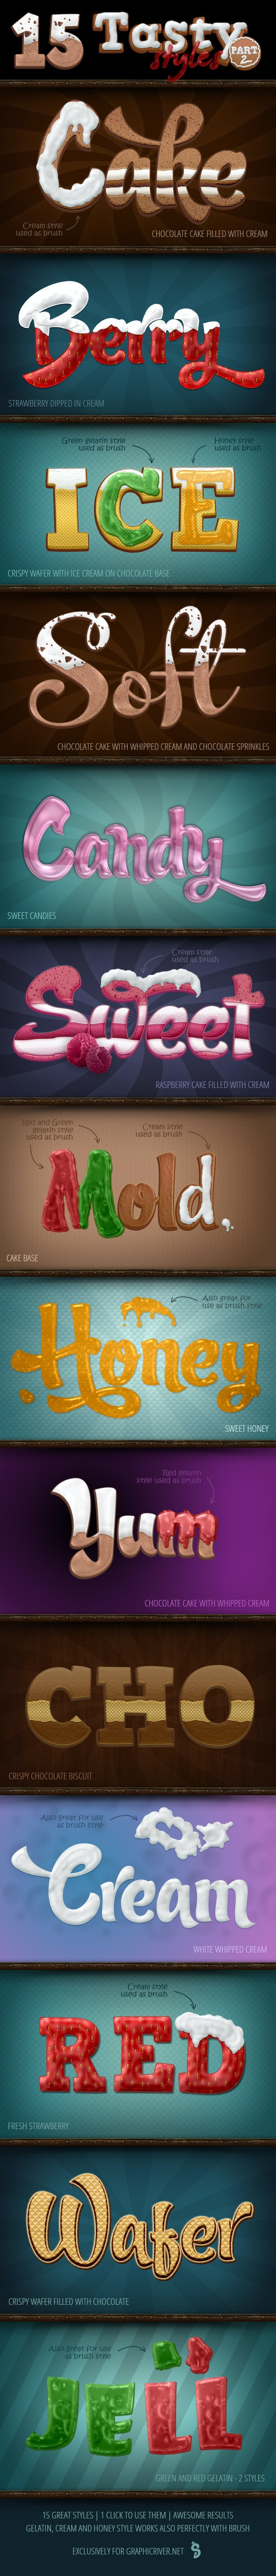 Tasty Food Styles - part 2 - Text Effects Styles